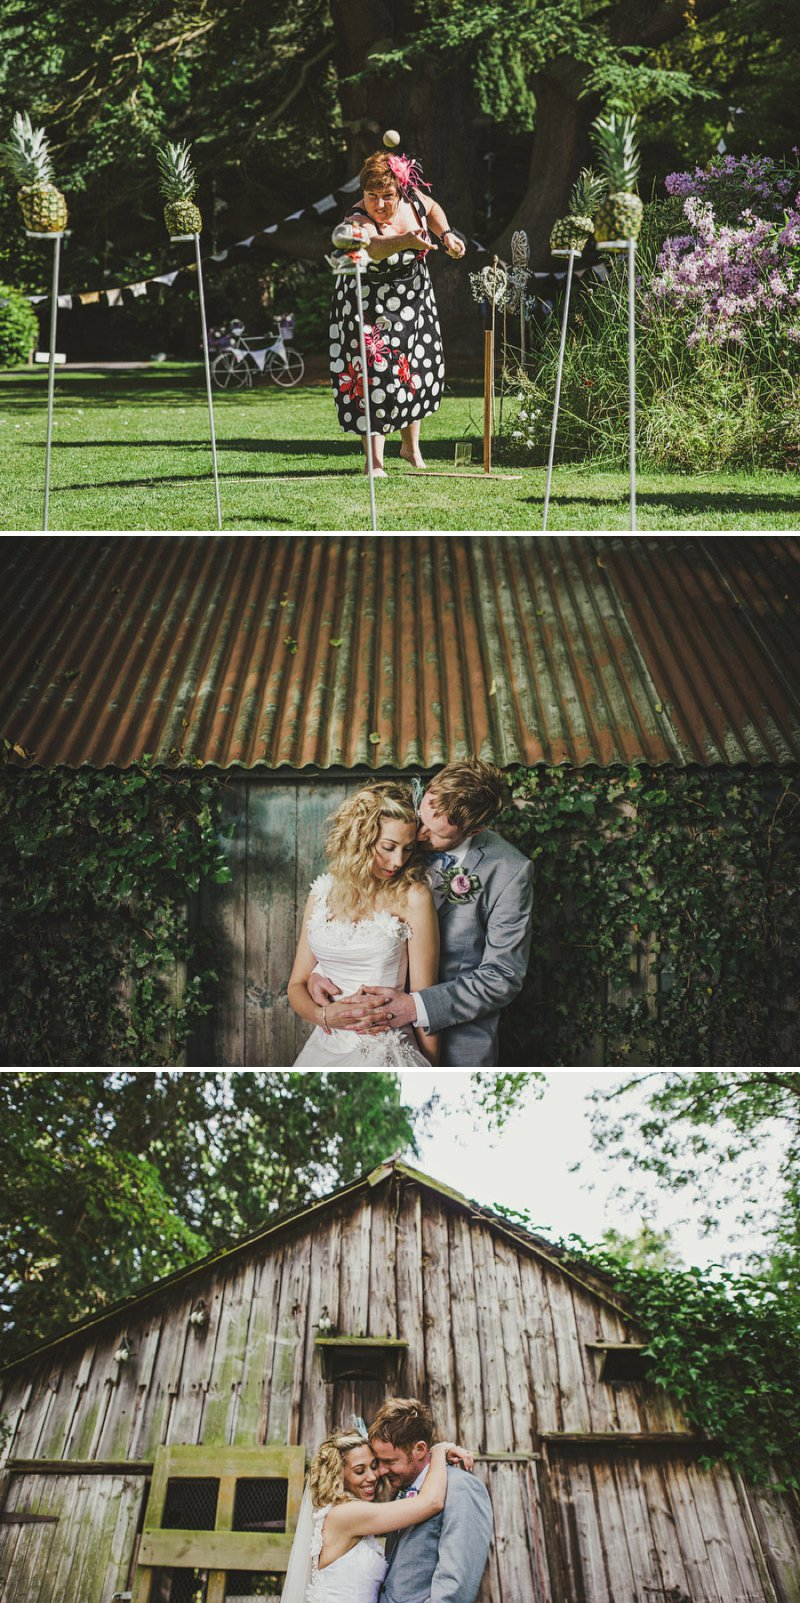 Scottish Wedding Archives ROCK MY WEDDING UK WEDDING BLOG